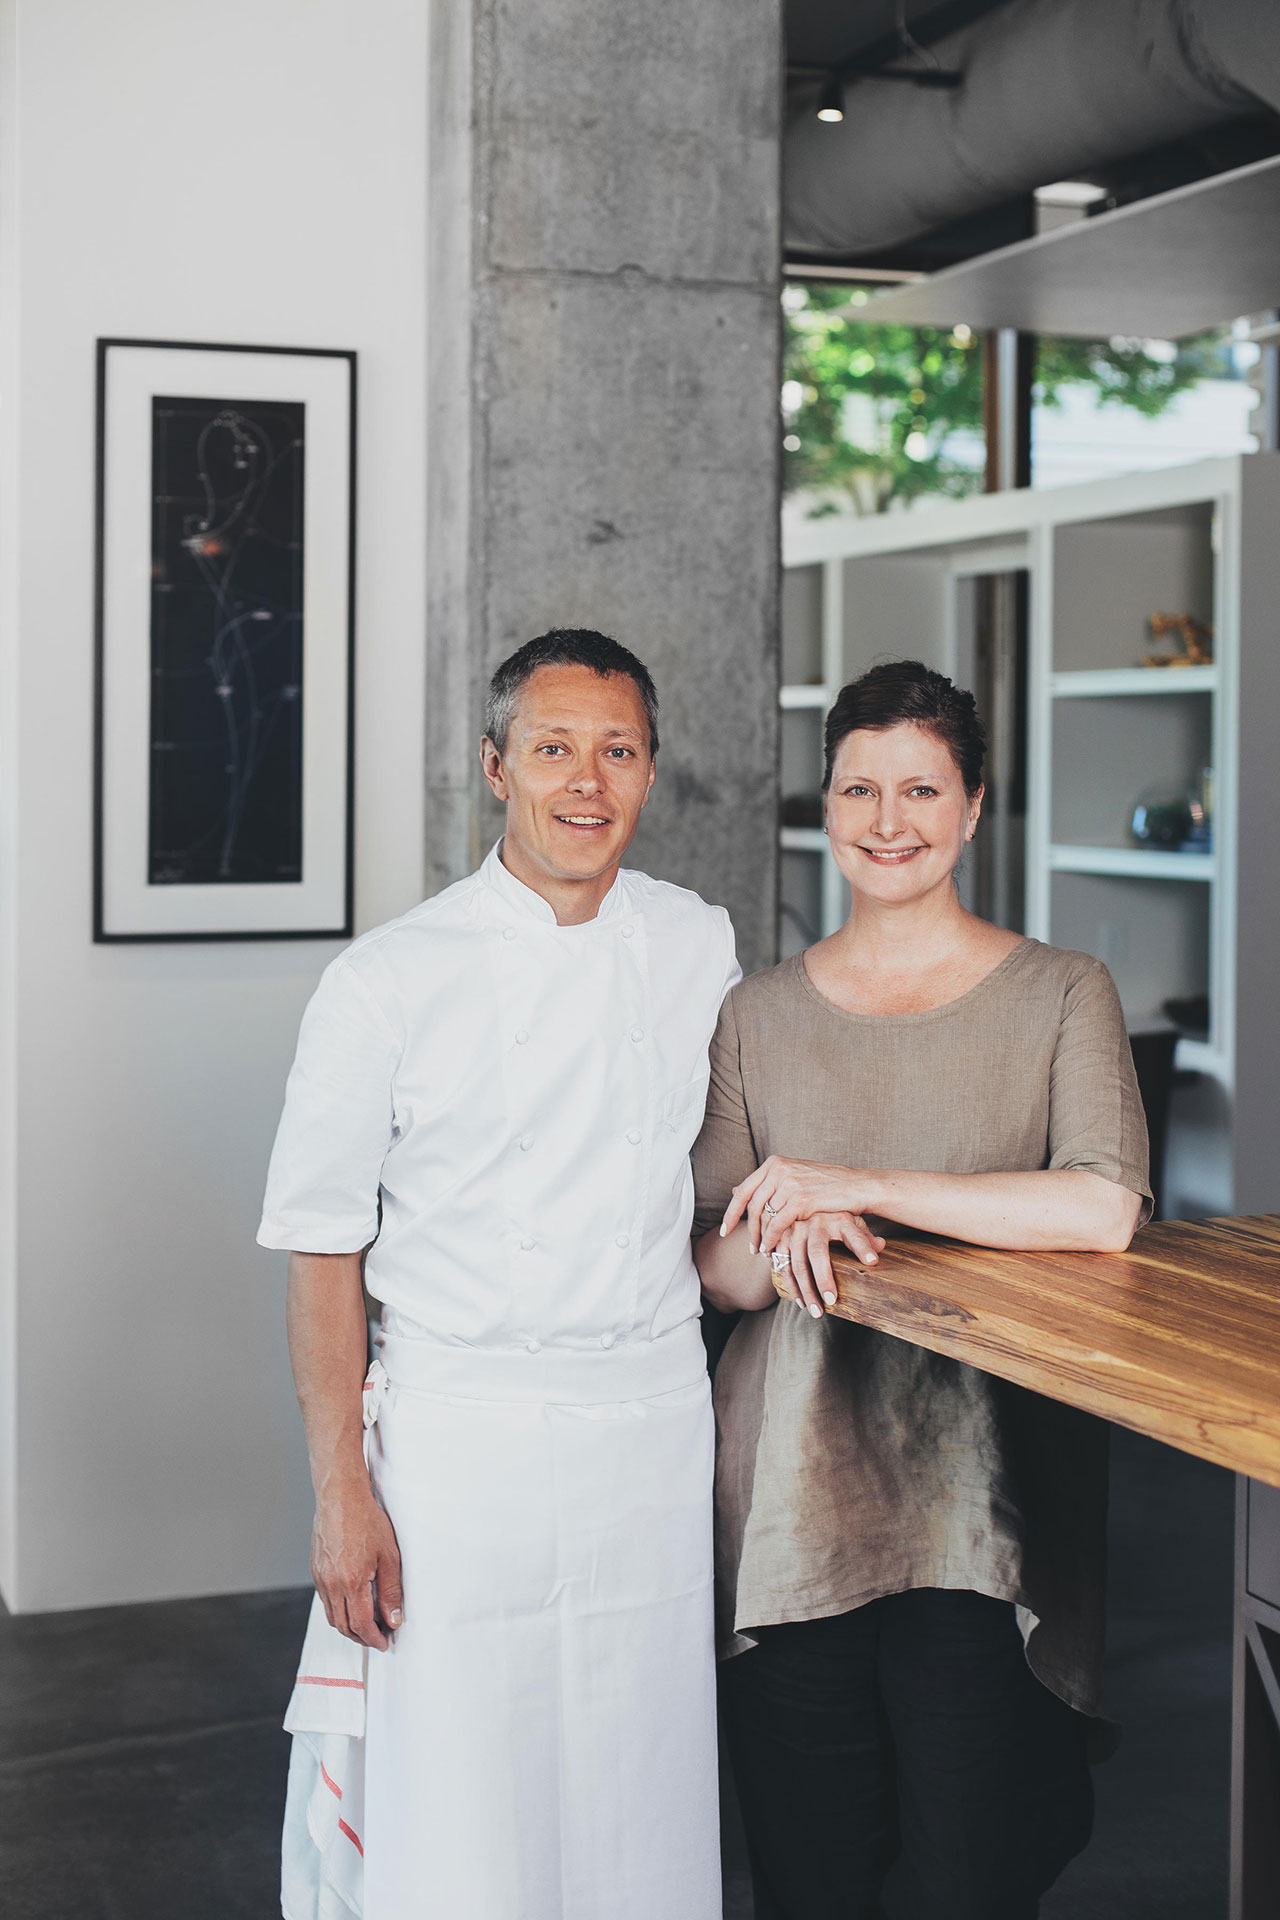 Chef Shaun McCrain and general manager Jill Kinney. Photo by Rafael Soldi.